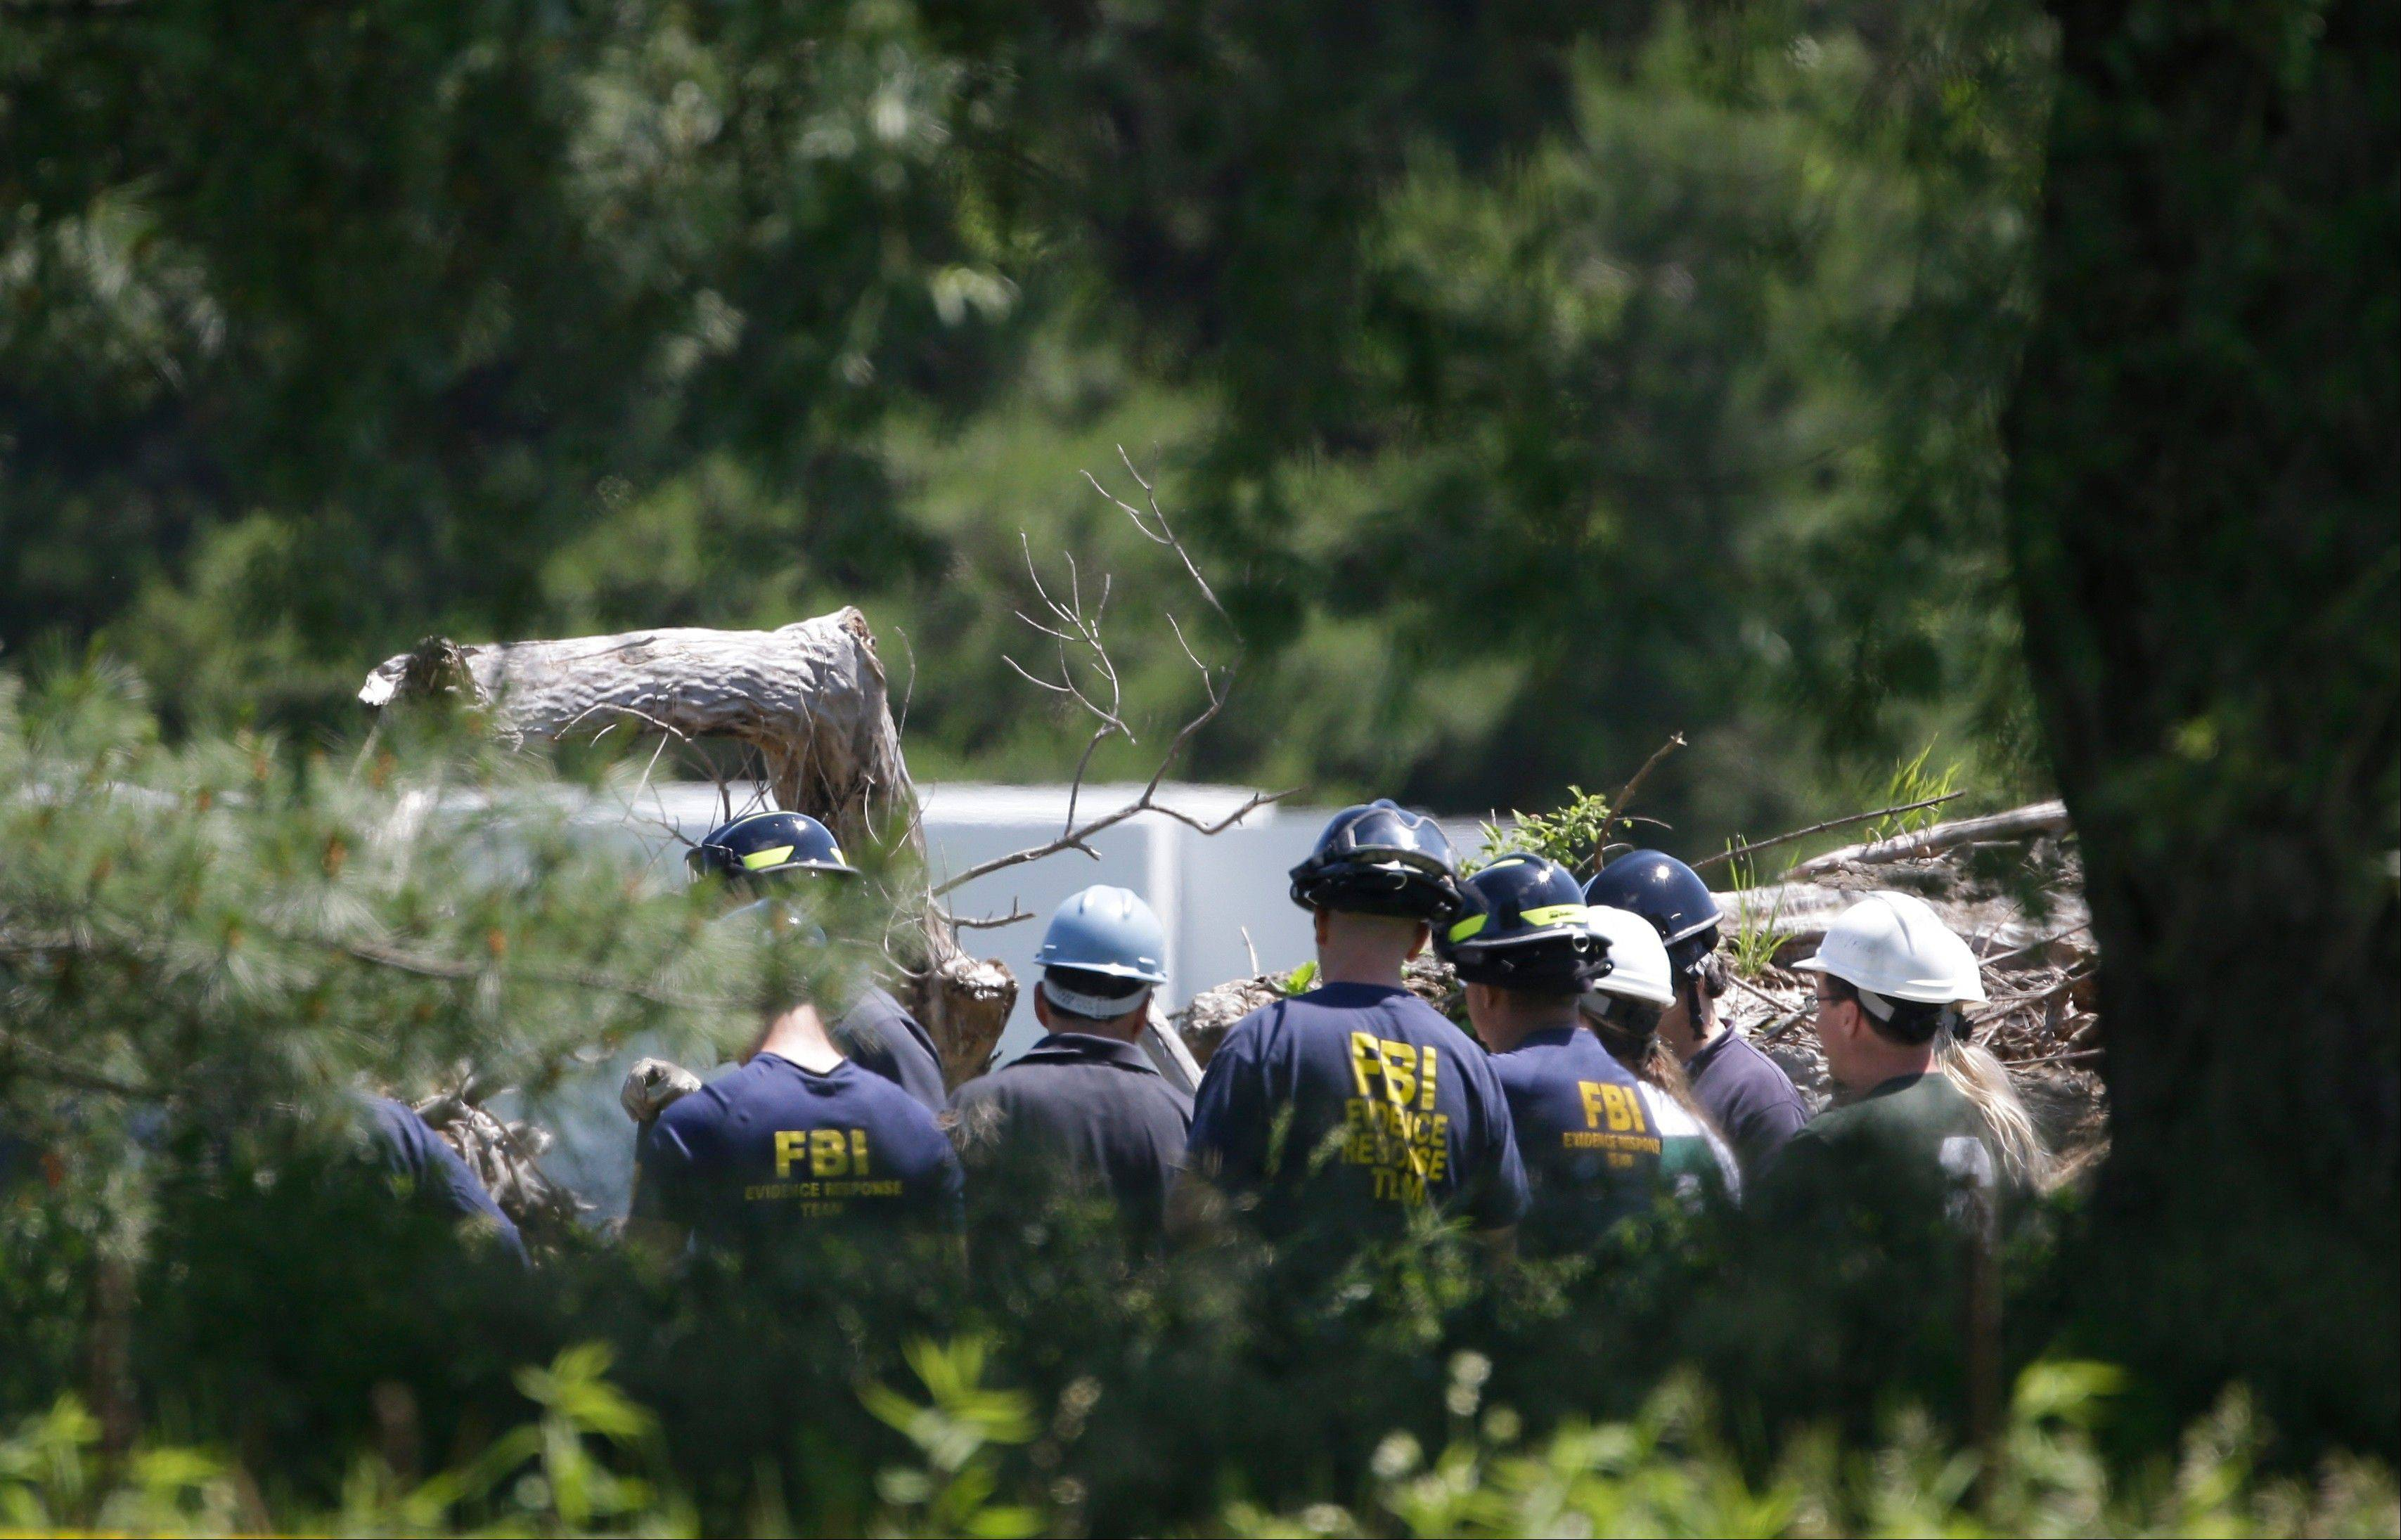 A search of a rural field in suburban Detroit has failed to turn up the remains of former Teamsters union leader Jimmy Hoffa, an FBI agent announced Wednesday as authorities ended the dig.